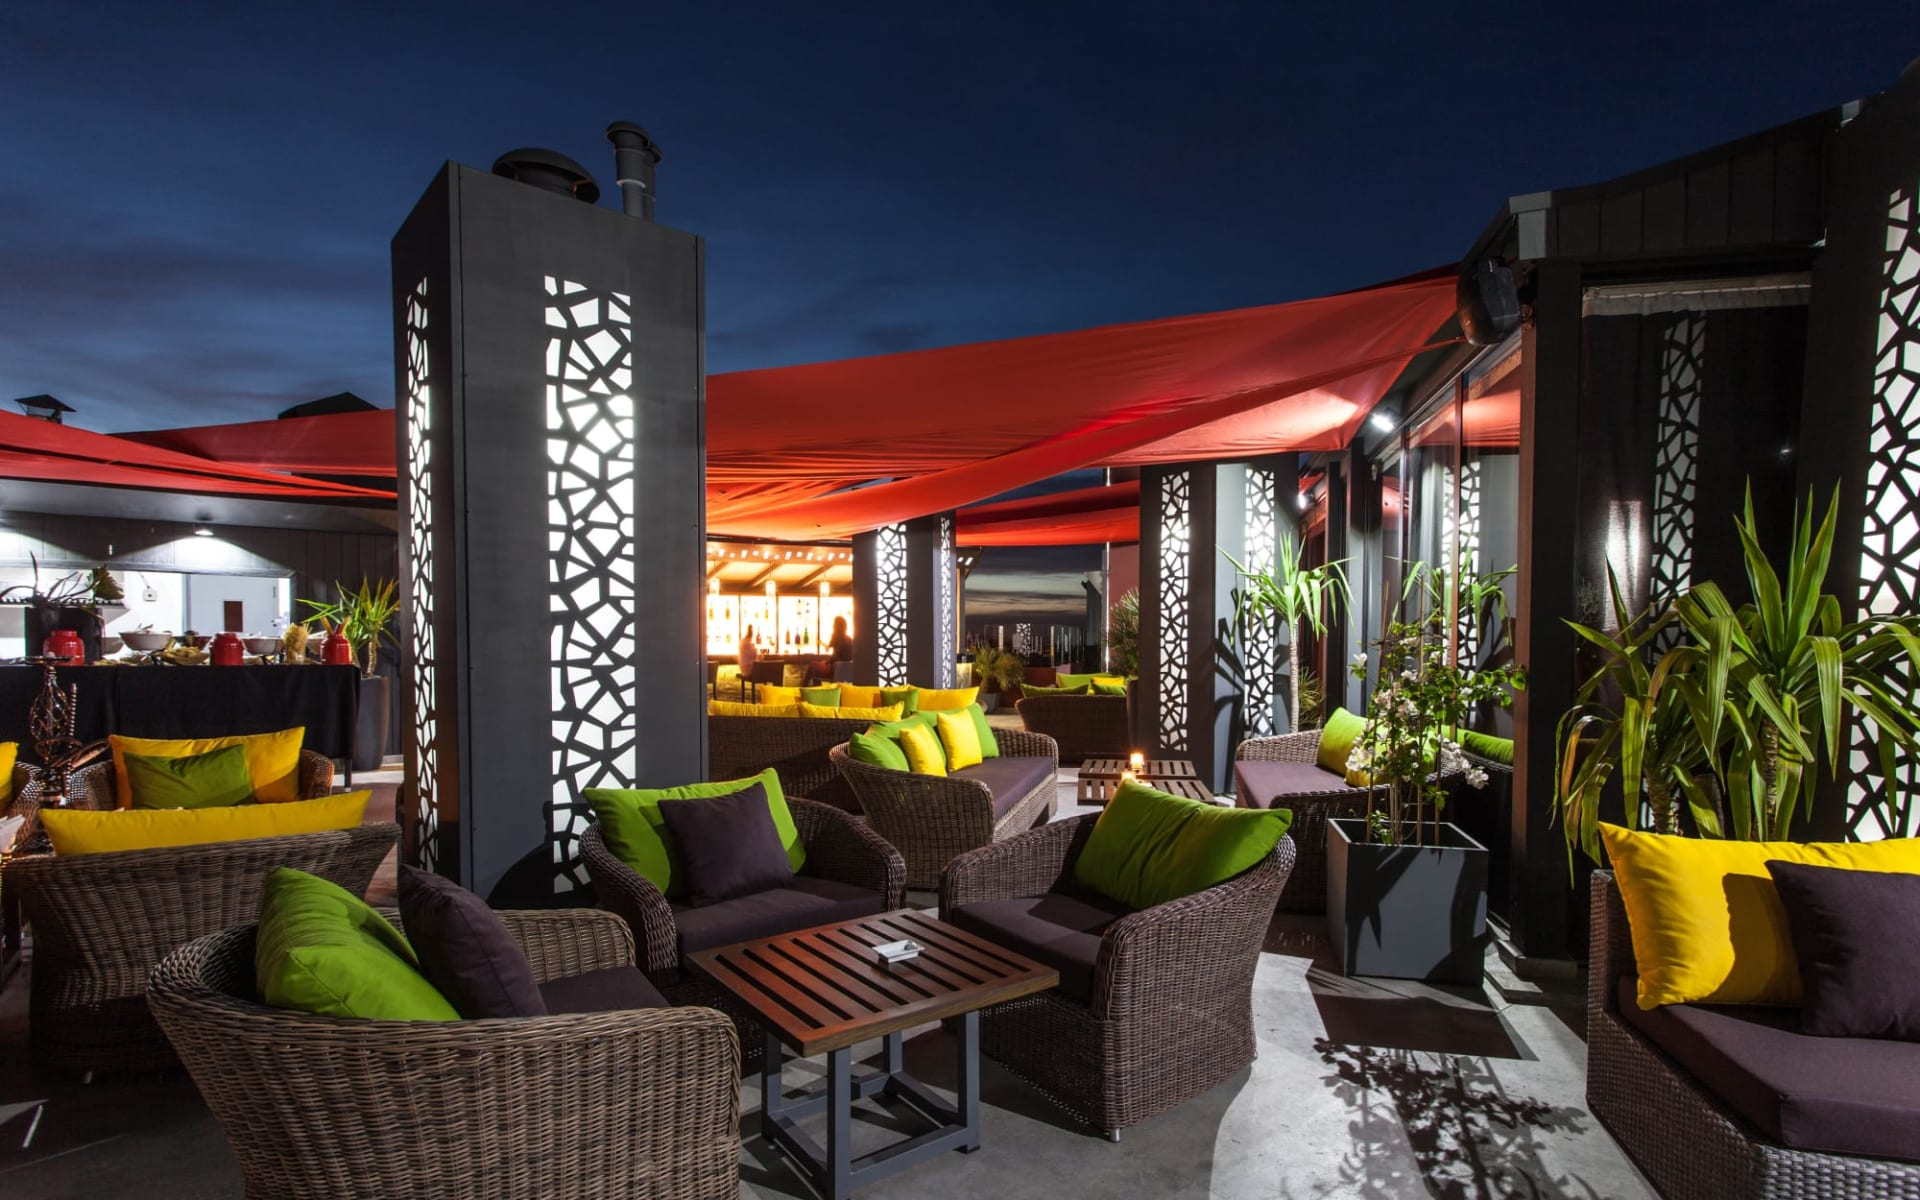 Hivernage Hotel & Spa in Marrakesch: Terrace